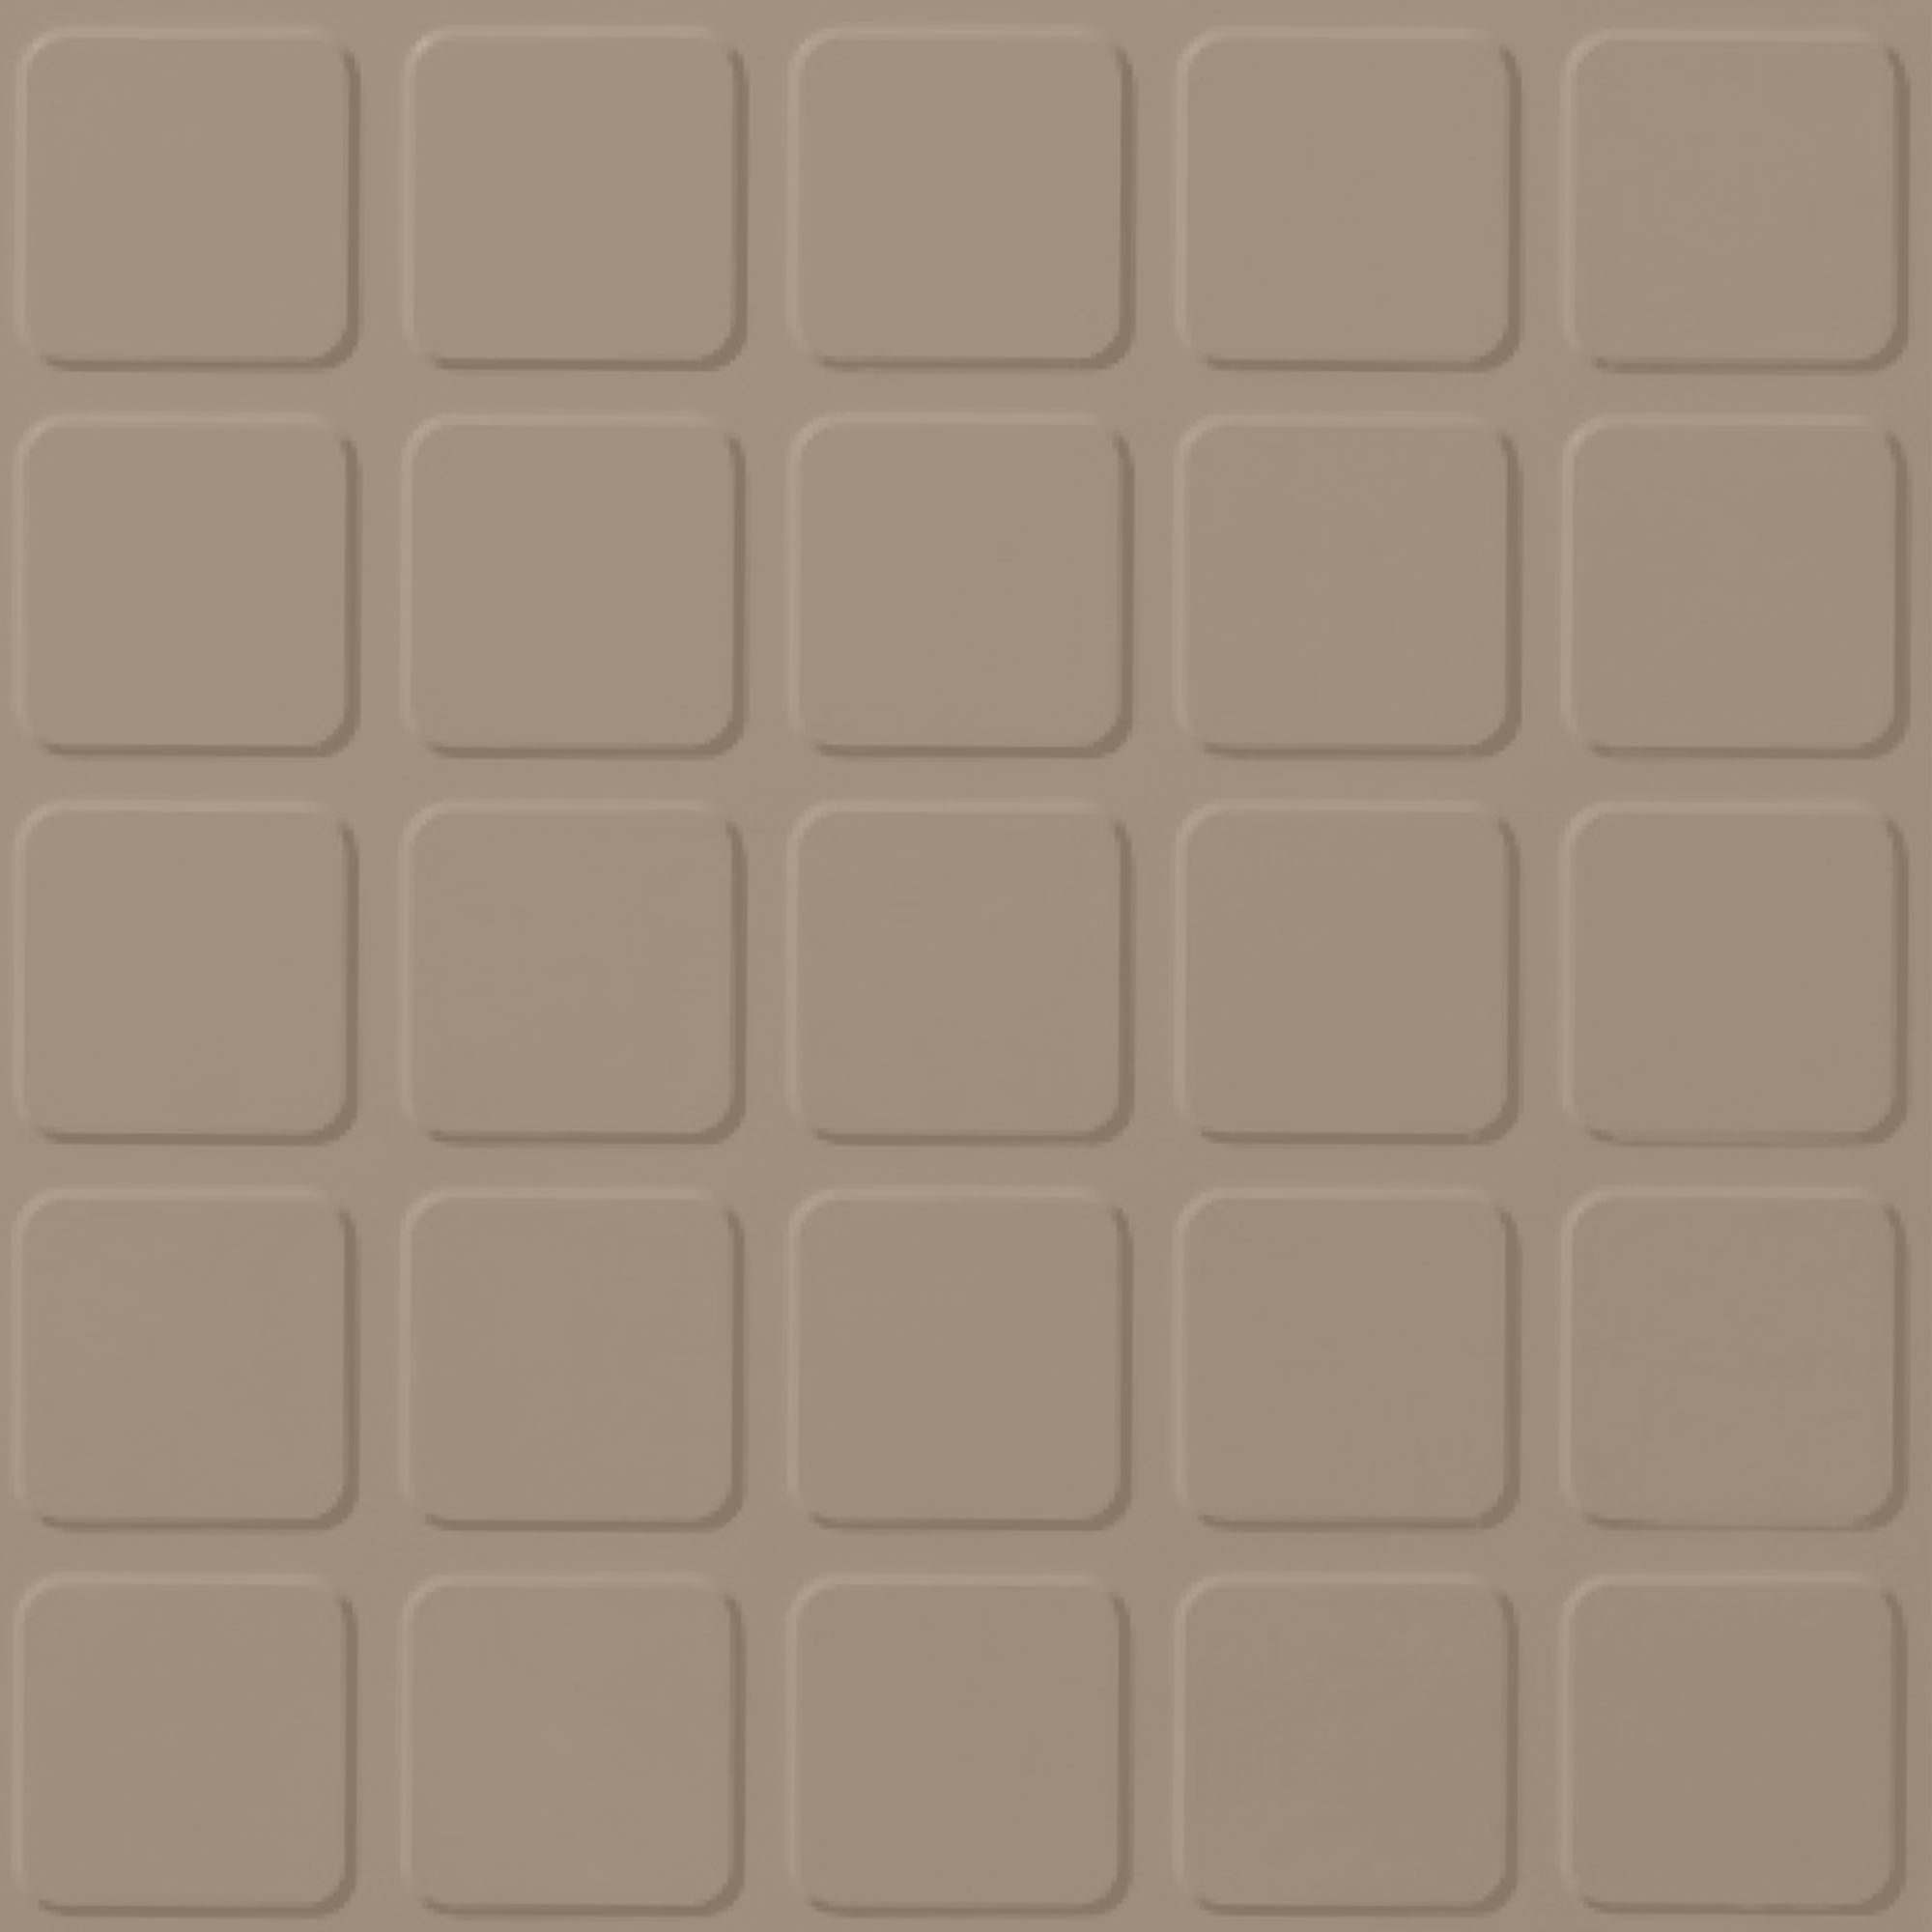 Roppe Rubber Design Treads - Raised Square Design Camel 191